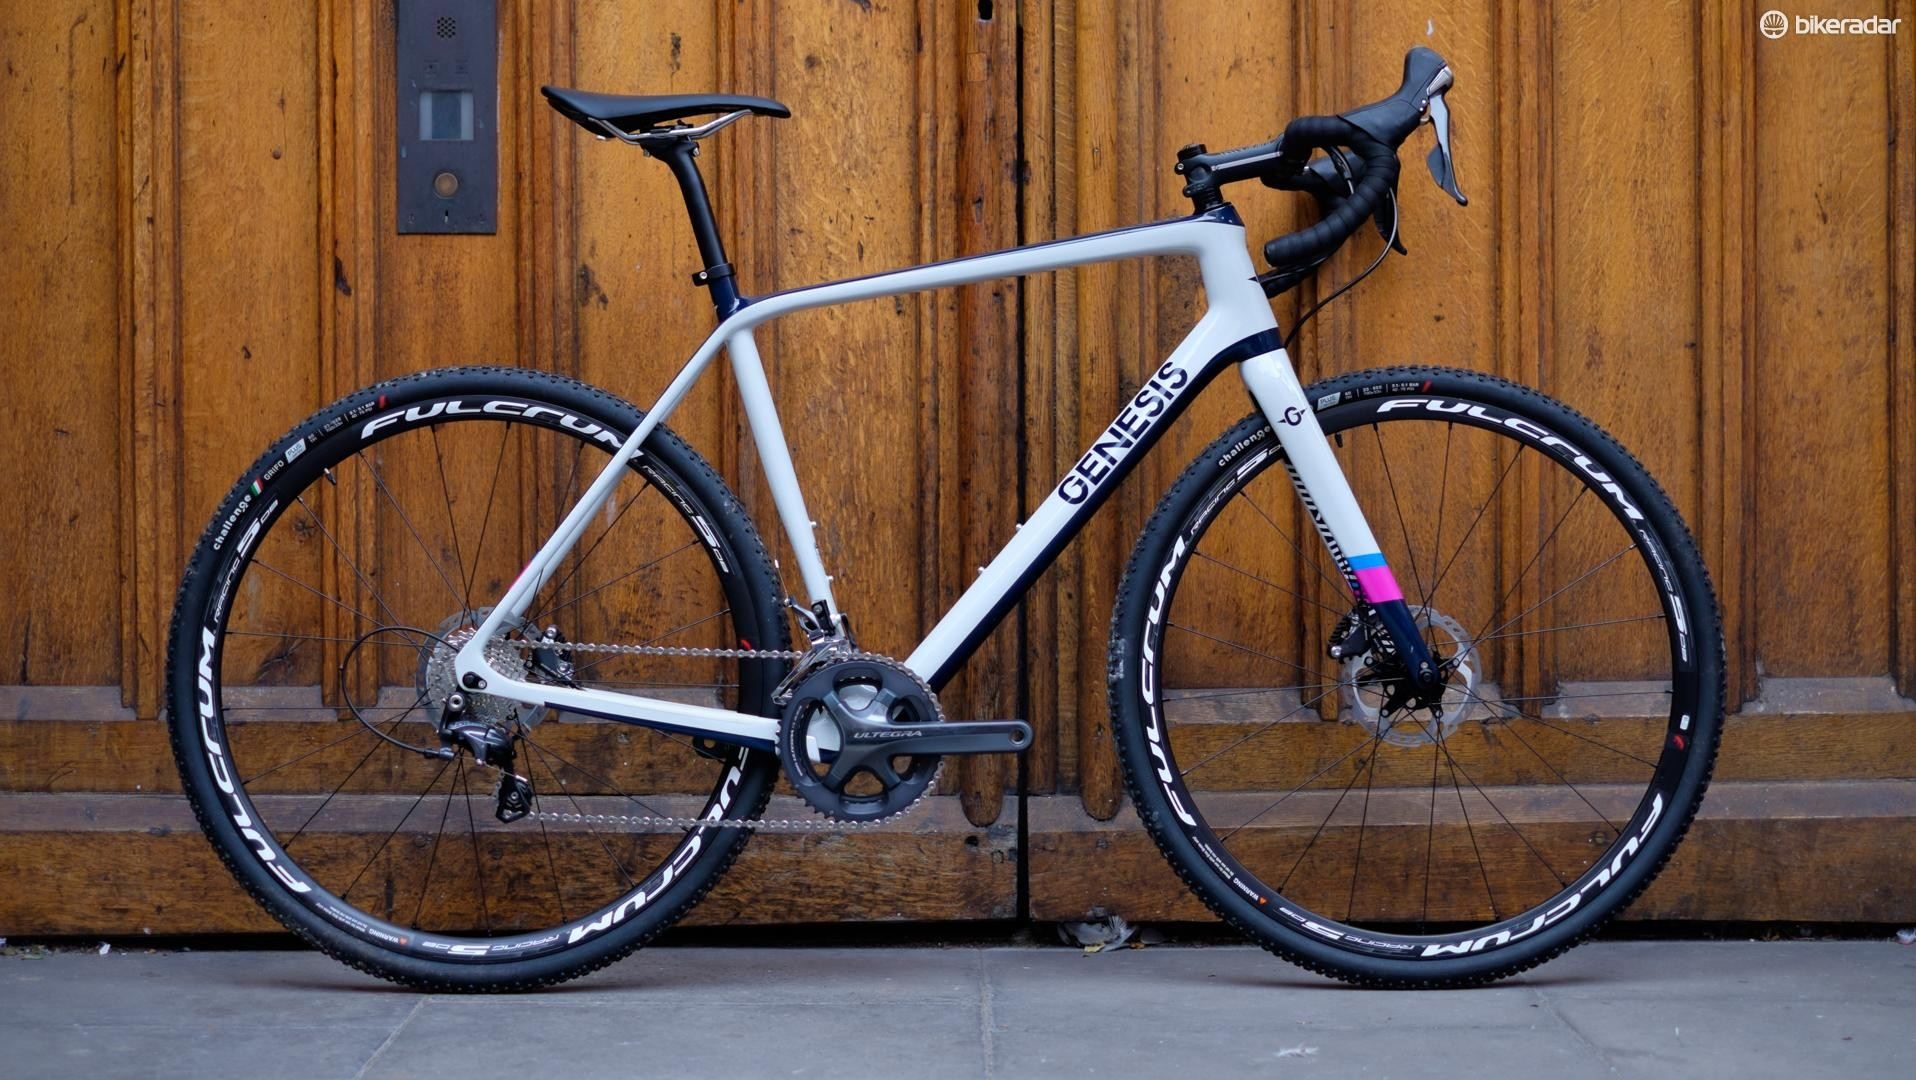 Genesis has a new range of cyclocross bikes, topped by the Carbon Vapour CX30